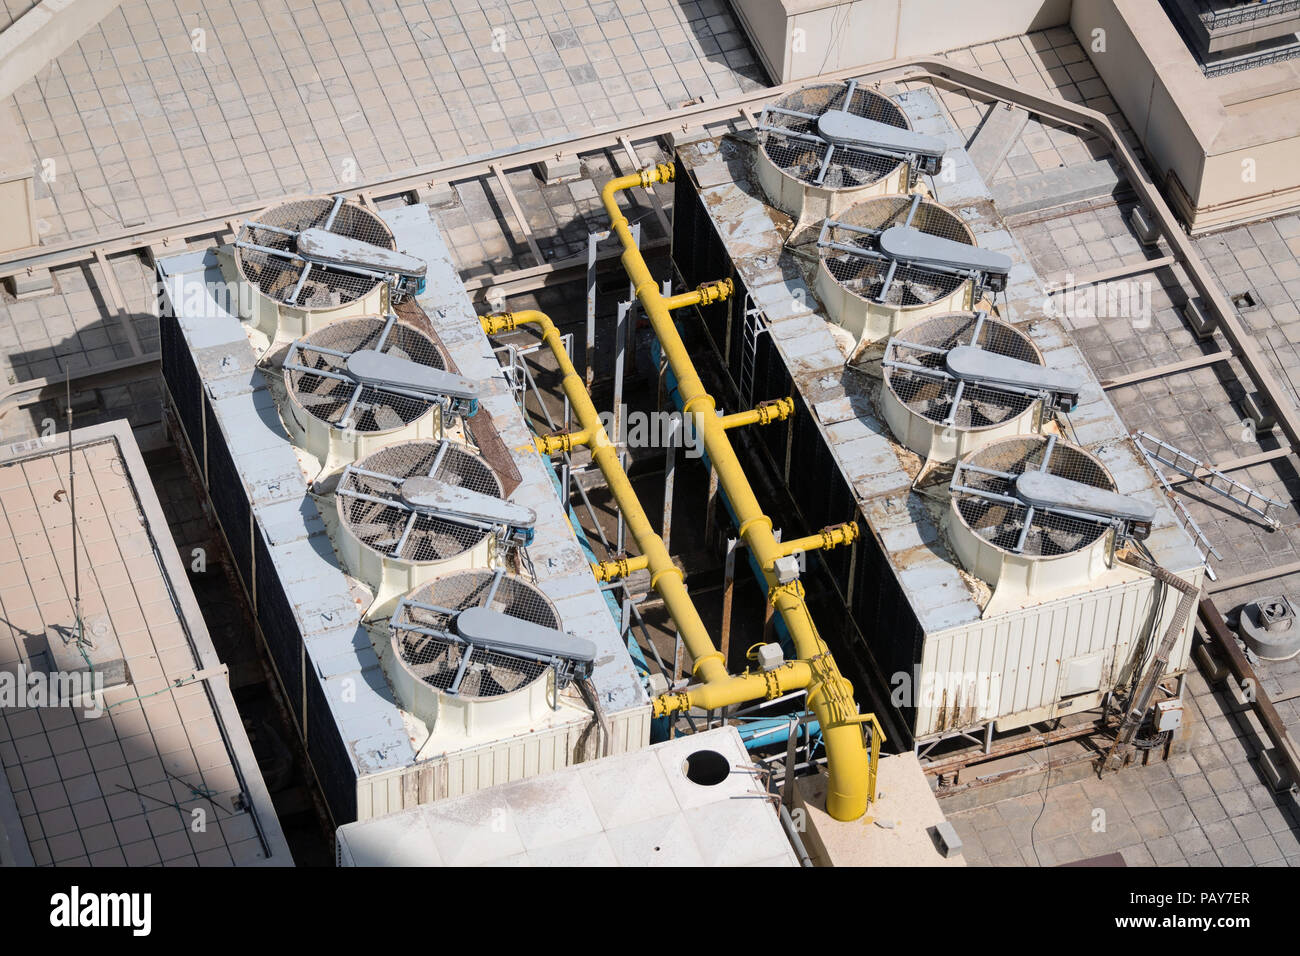 Air compressors and pipe system on the roof of a building Stock Photo